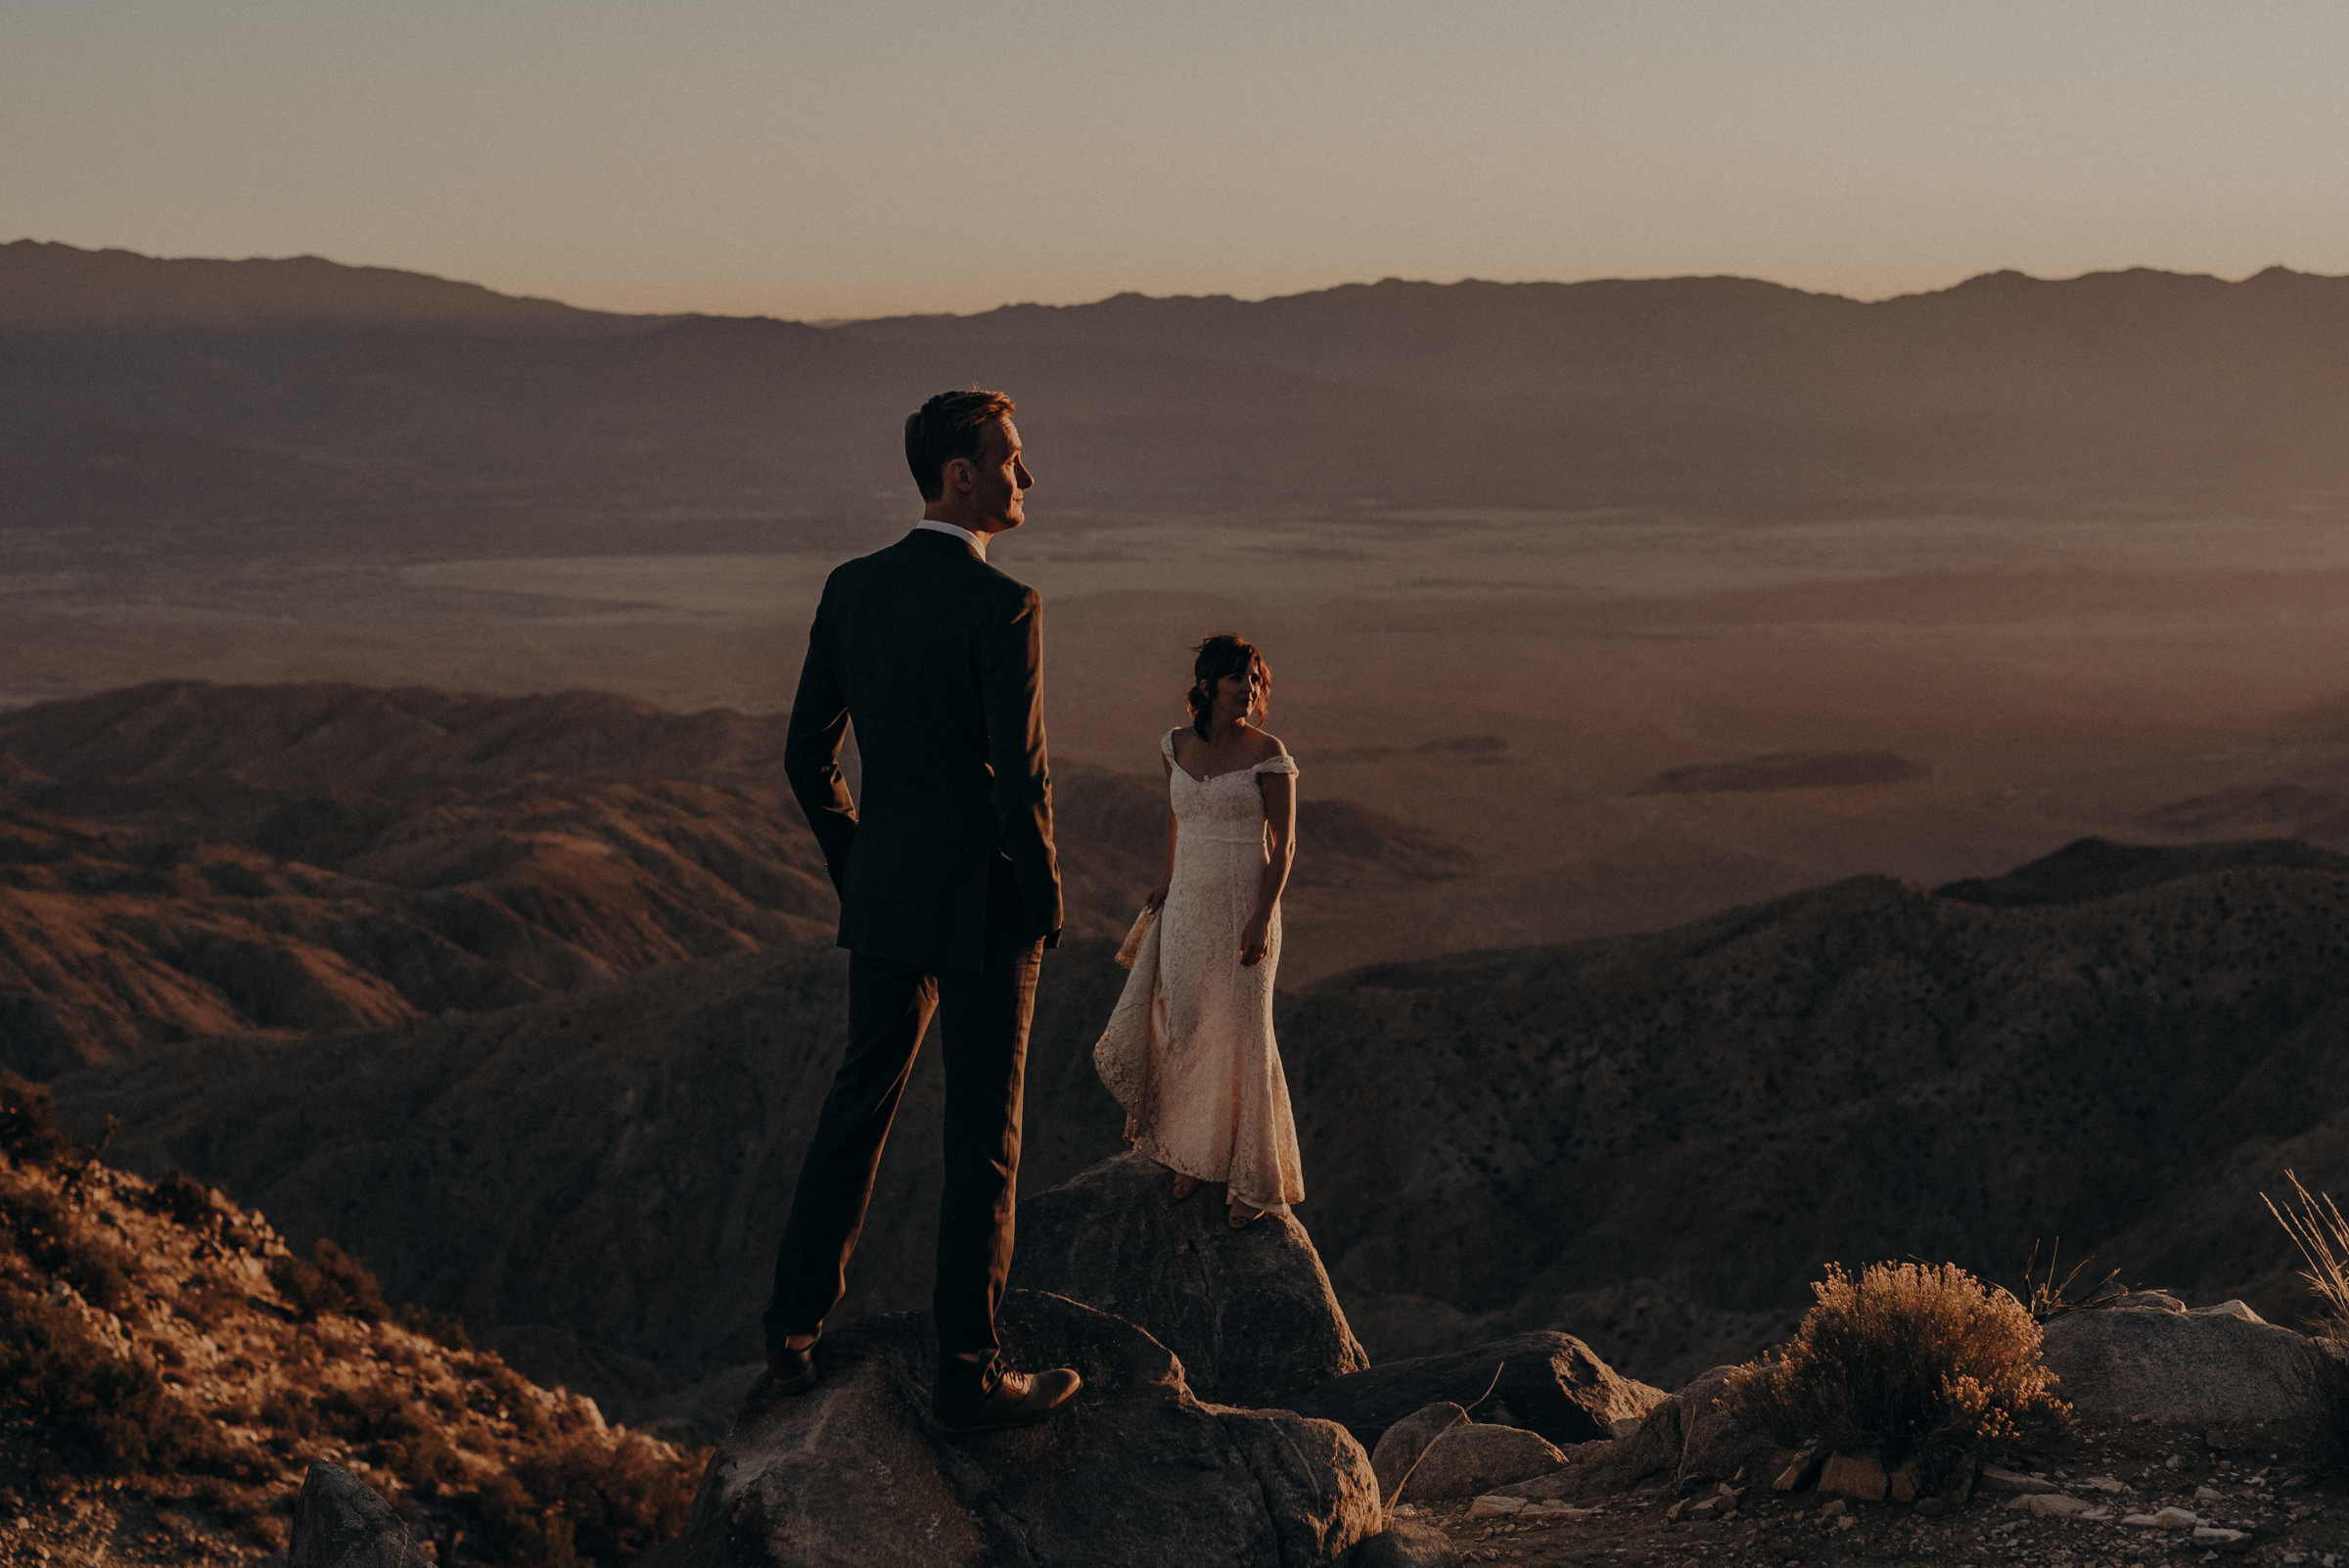 Joshua Tree Elopement - Los Angeles Wedding Photographers - IsaiahAndTaylor.com-105.jpg